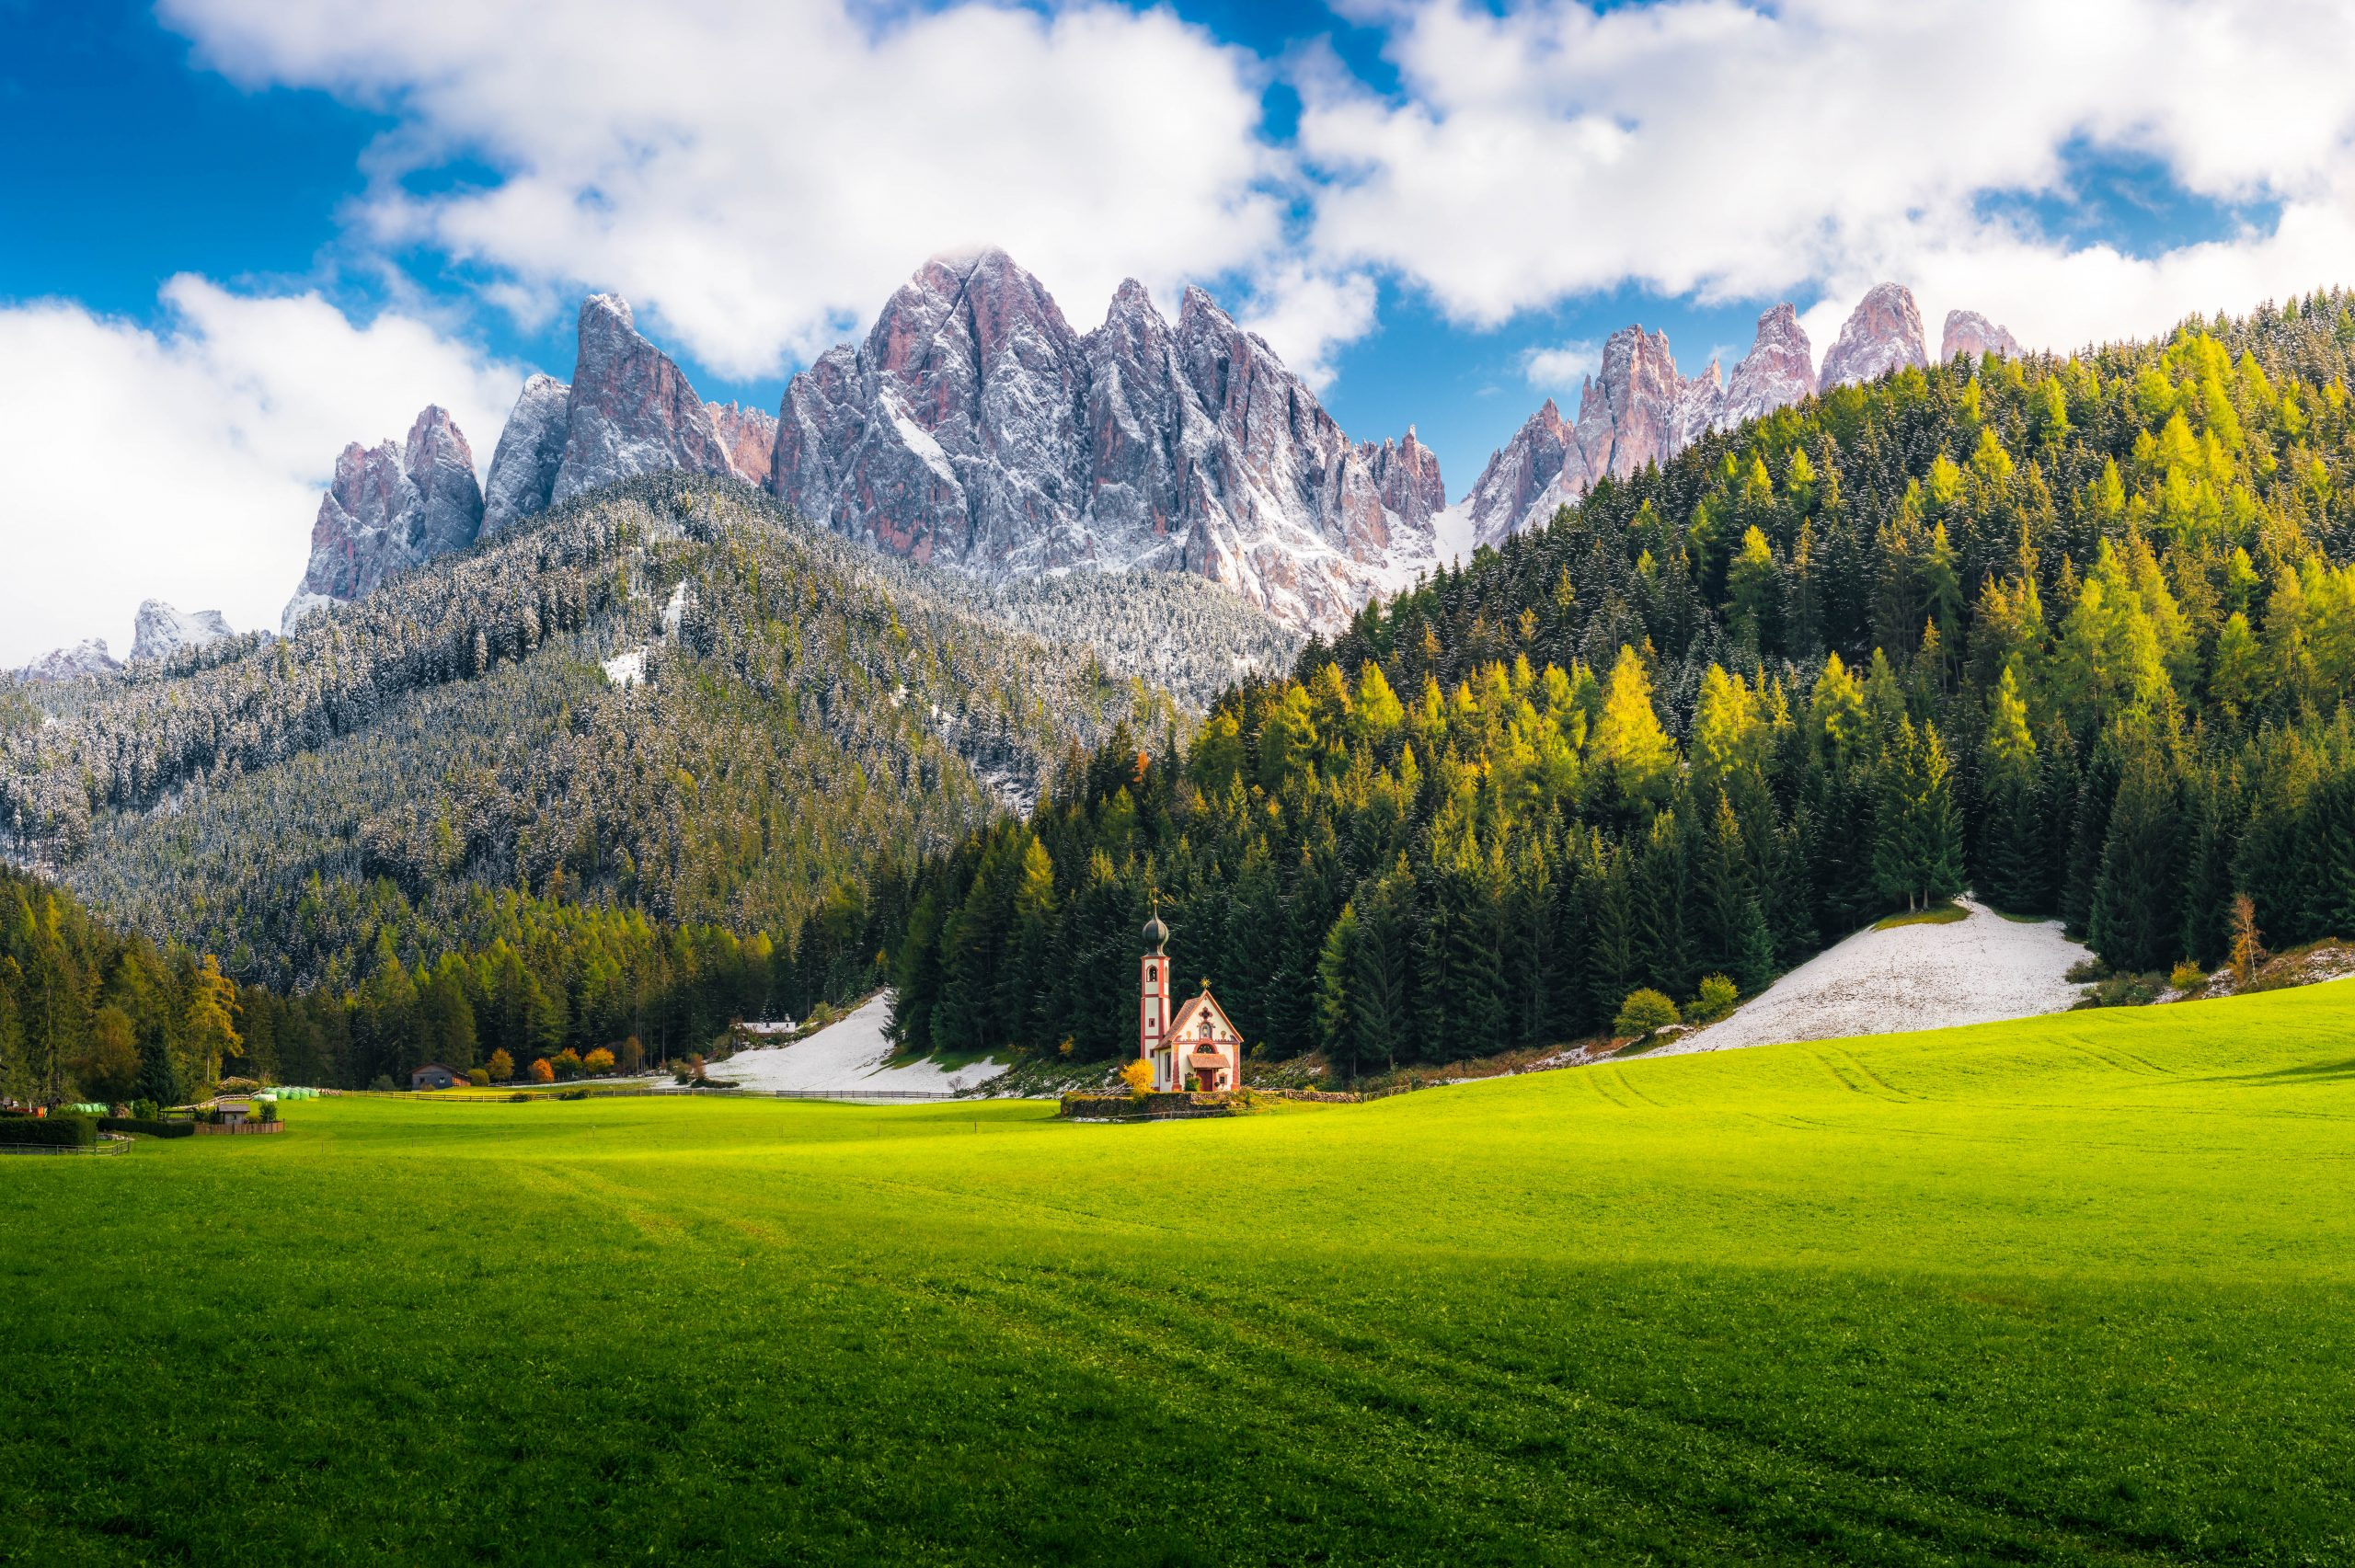 """A little church stands in a green field backdropped by forest-clad slopes and jagged peaks beneath a cloudy sky, a featured image used in the article """"Heubad: The Alpine Tradition of Hay Bathing"""" on phmillennia.com"""